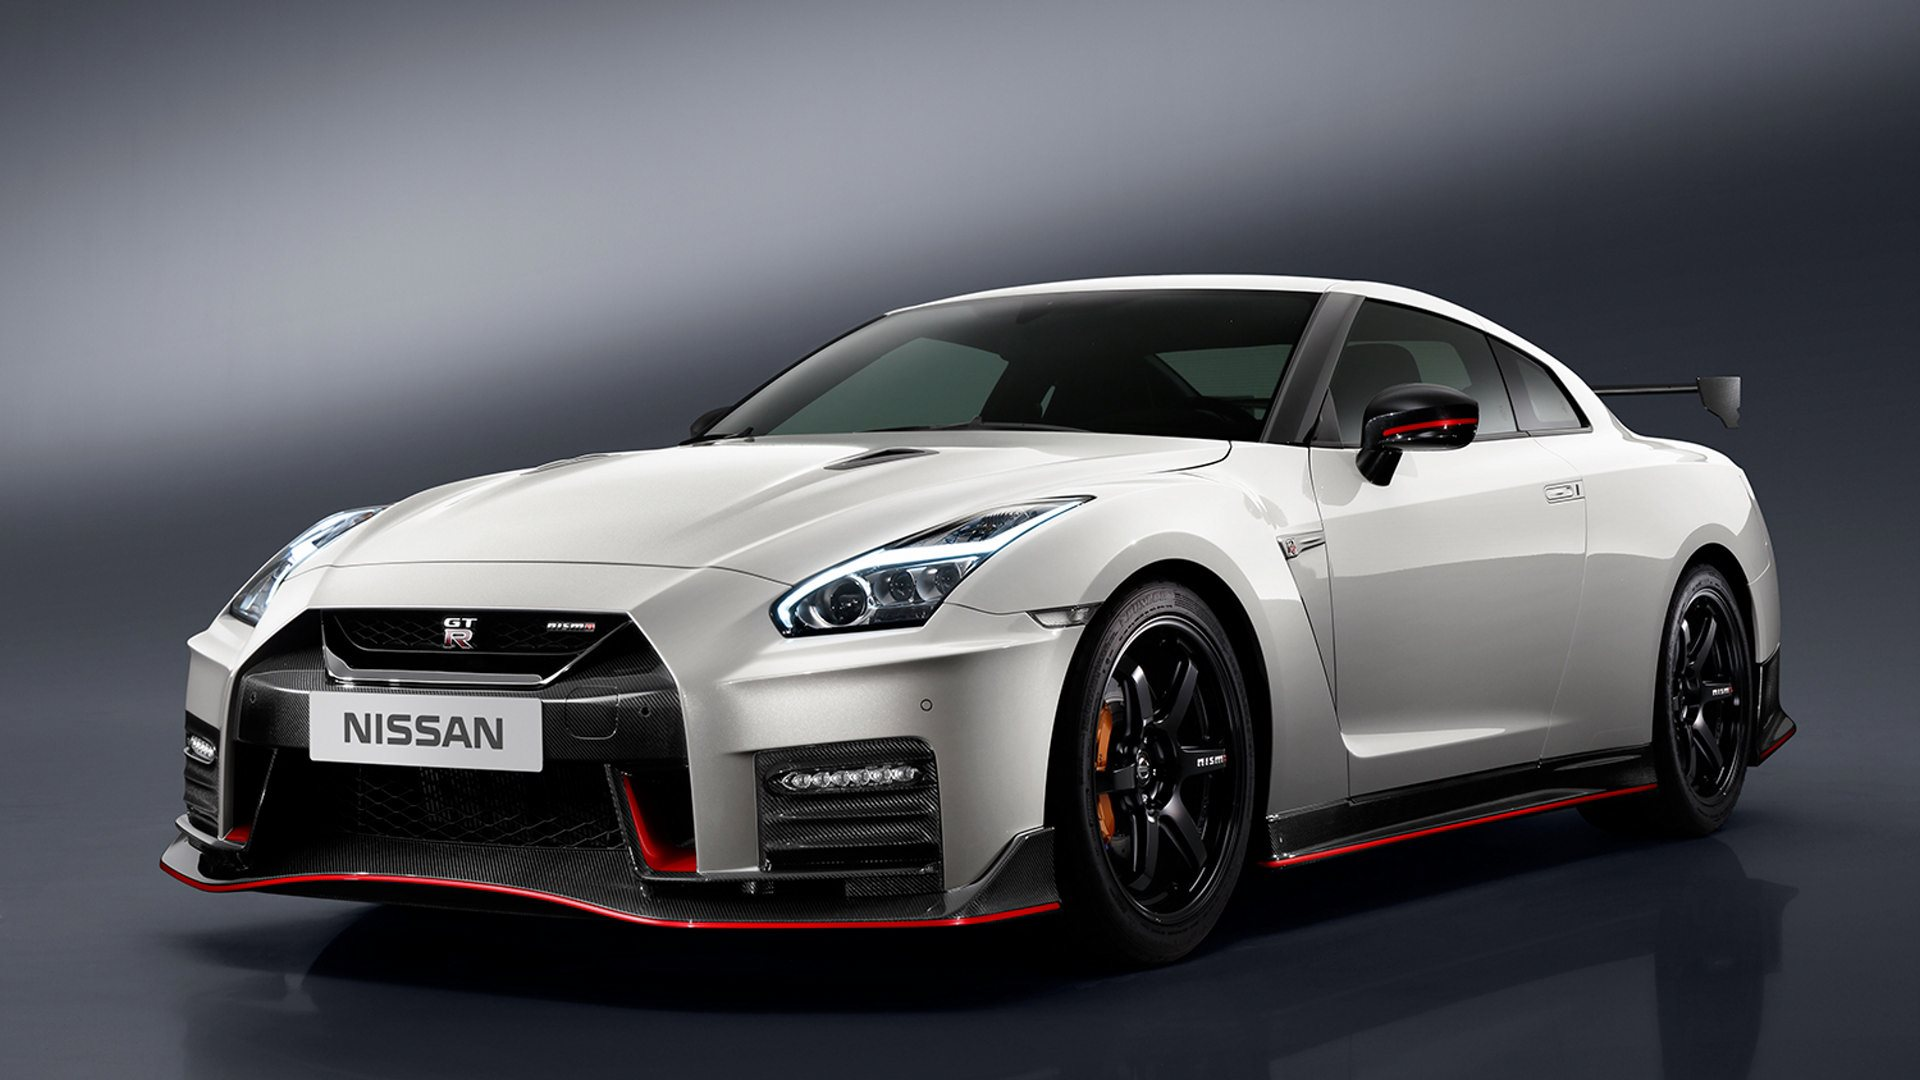 2017 nissan gt r nismo wallpaper background